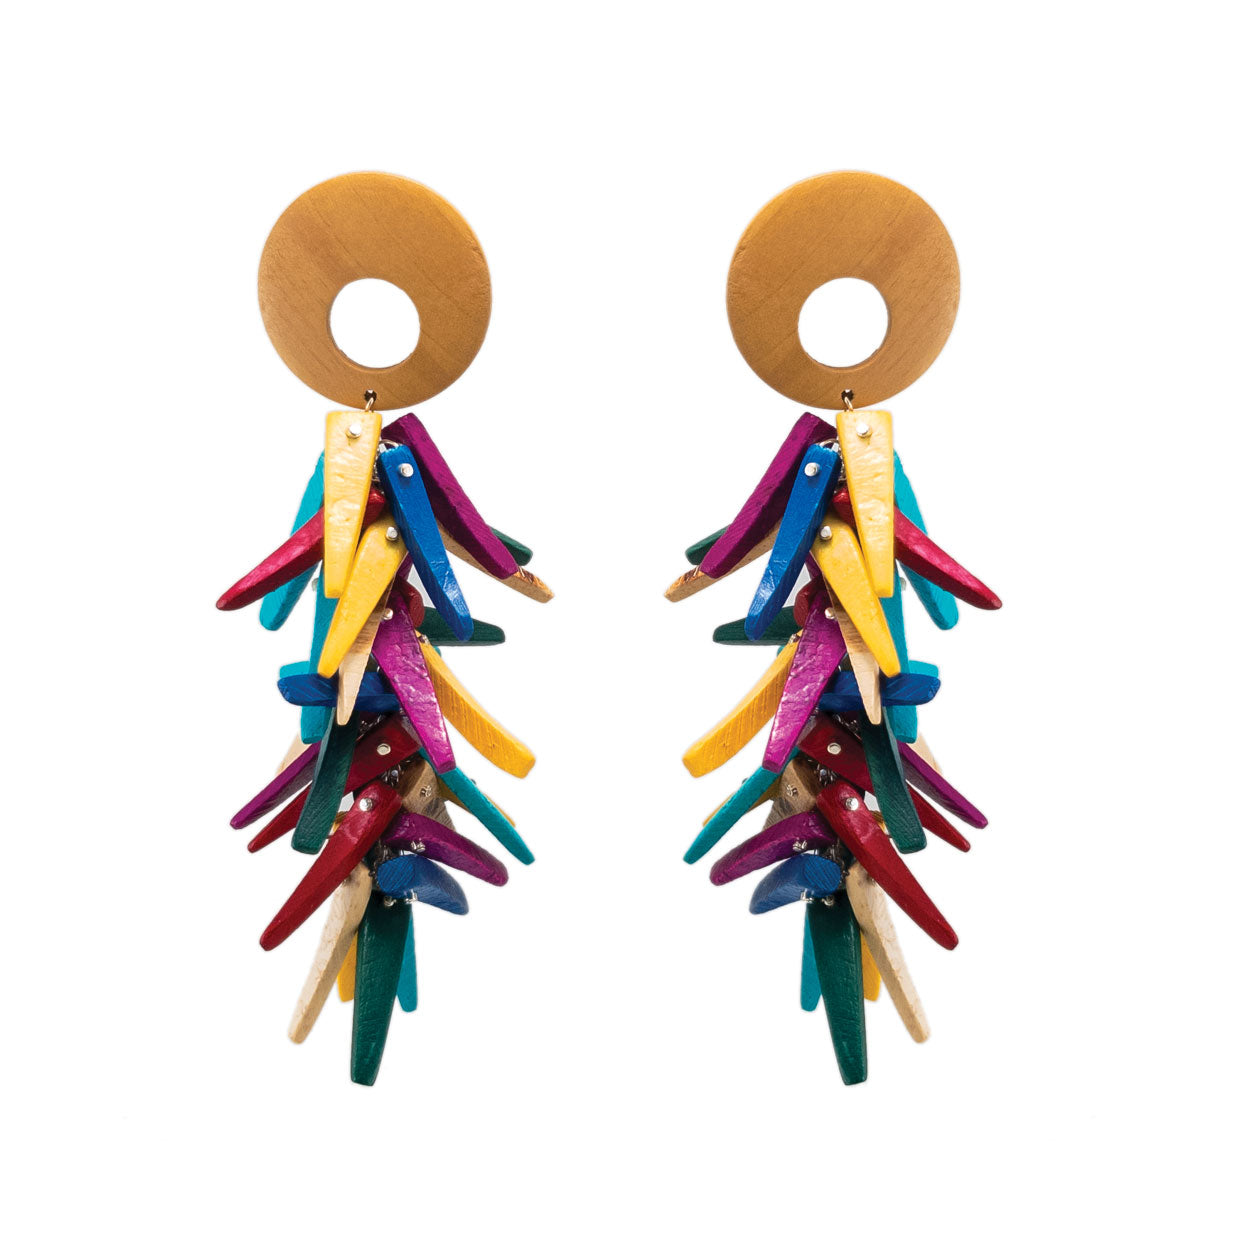 Tropical rainbow coco stick dangle earrings with wood